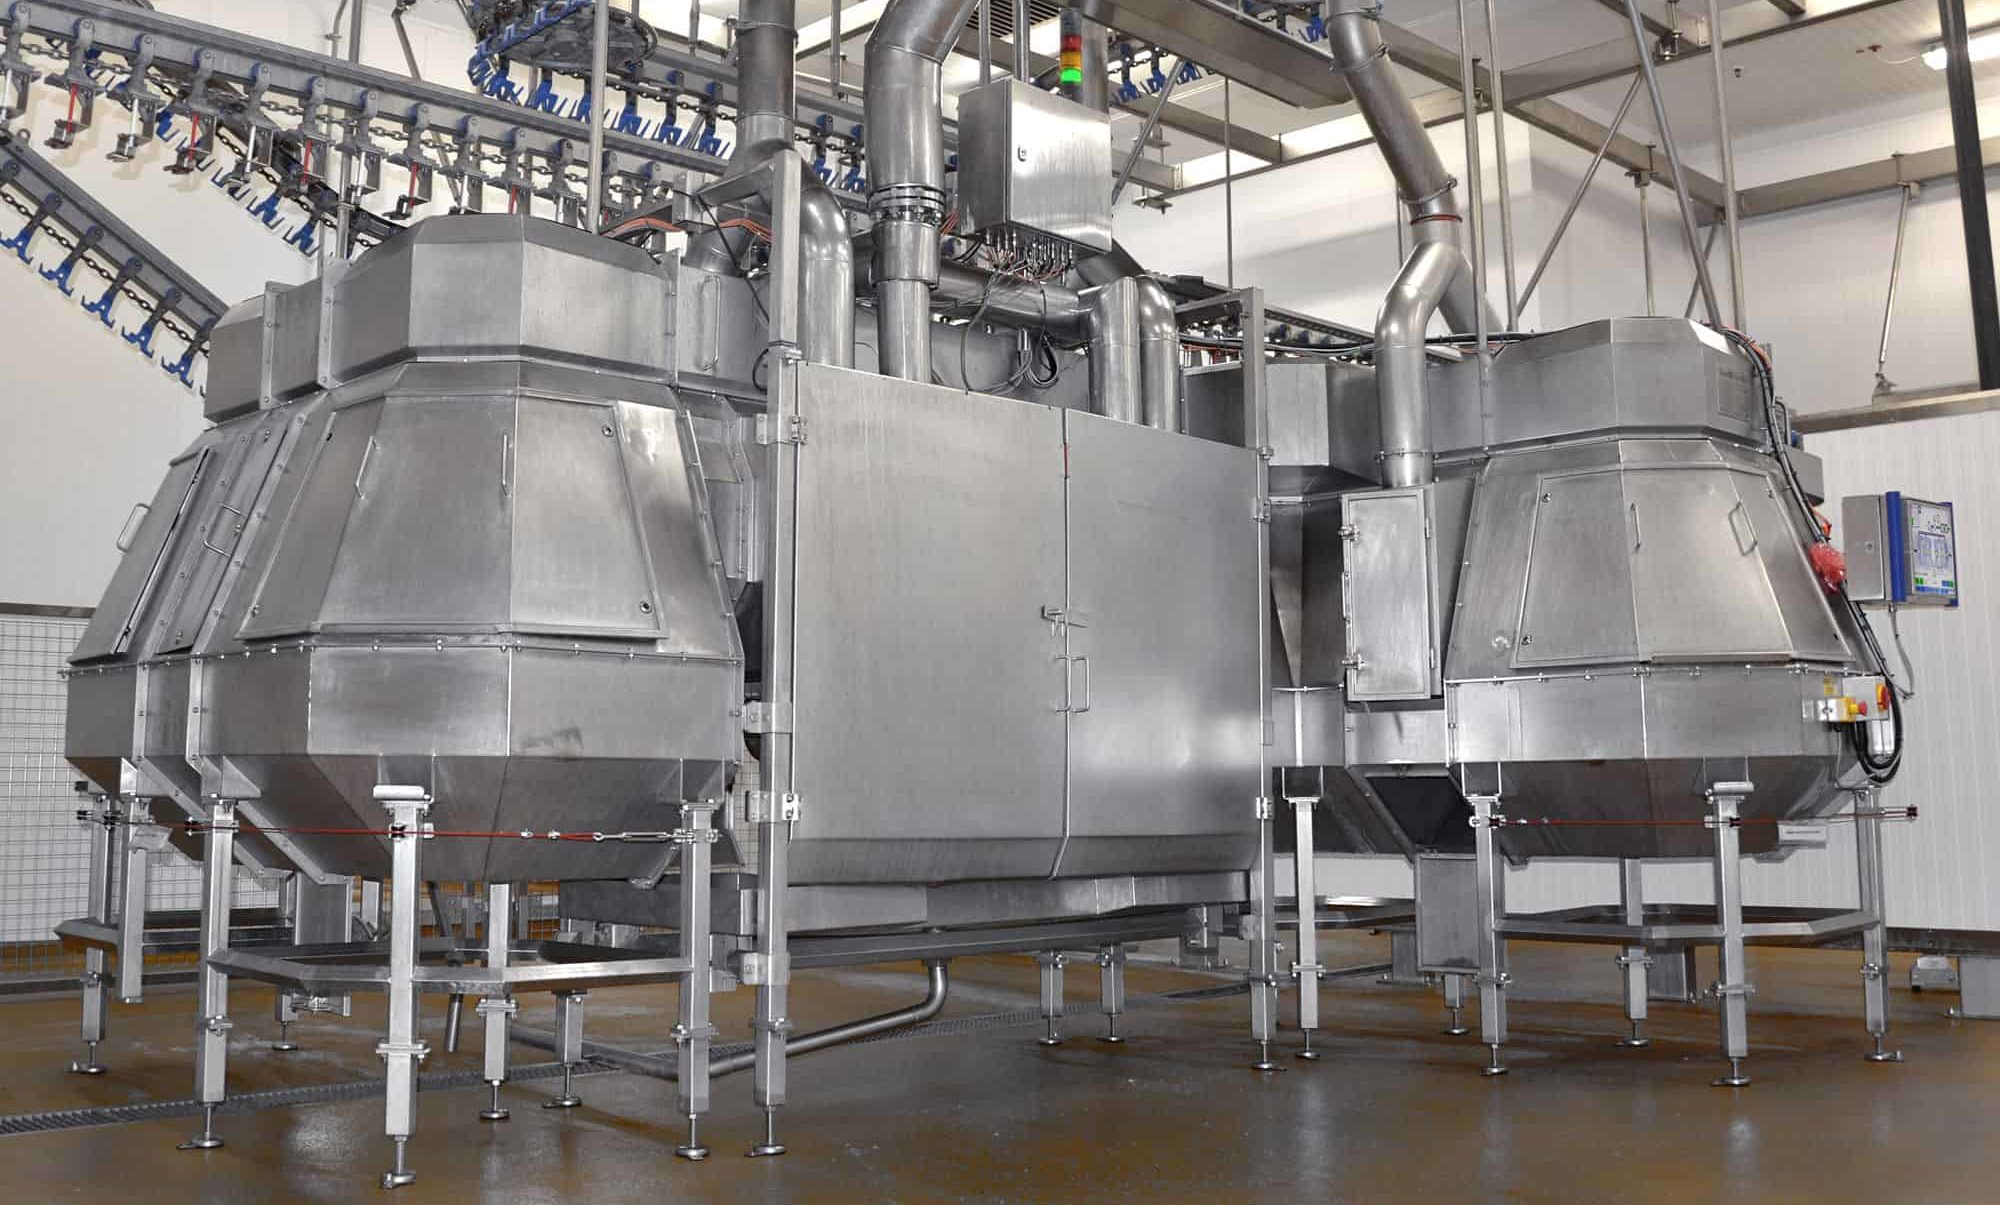 SonoSteam Poultry equipment